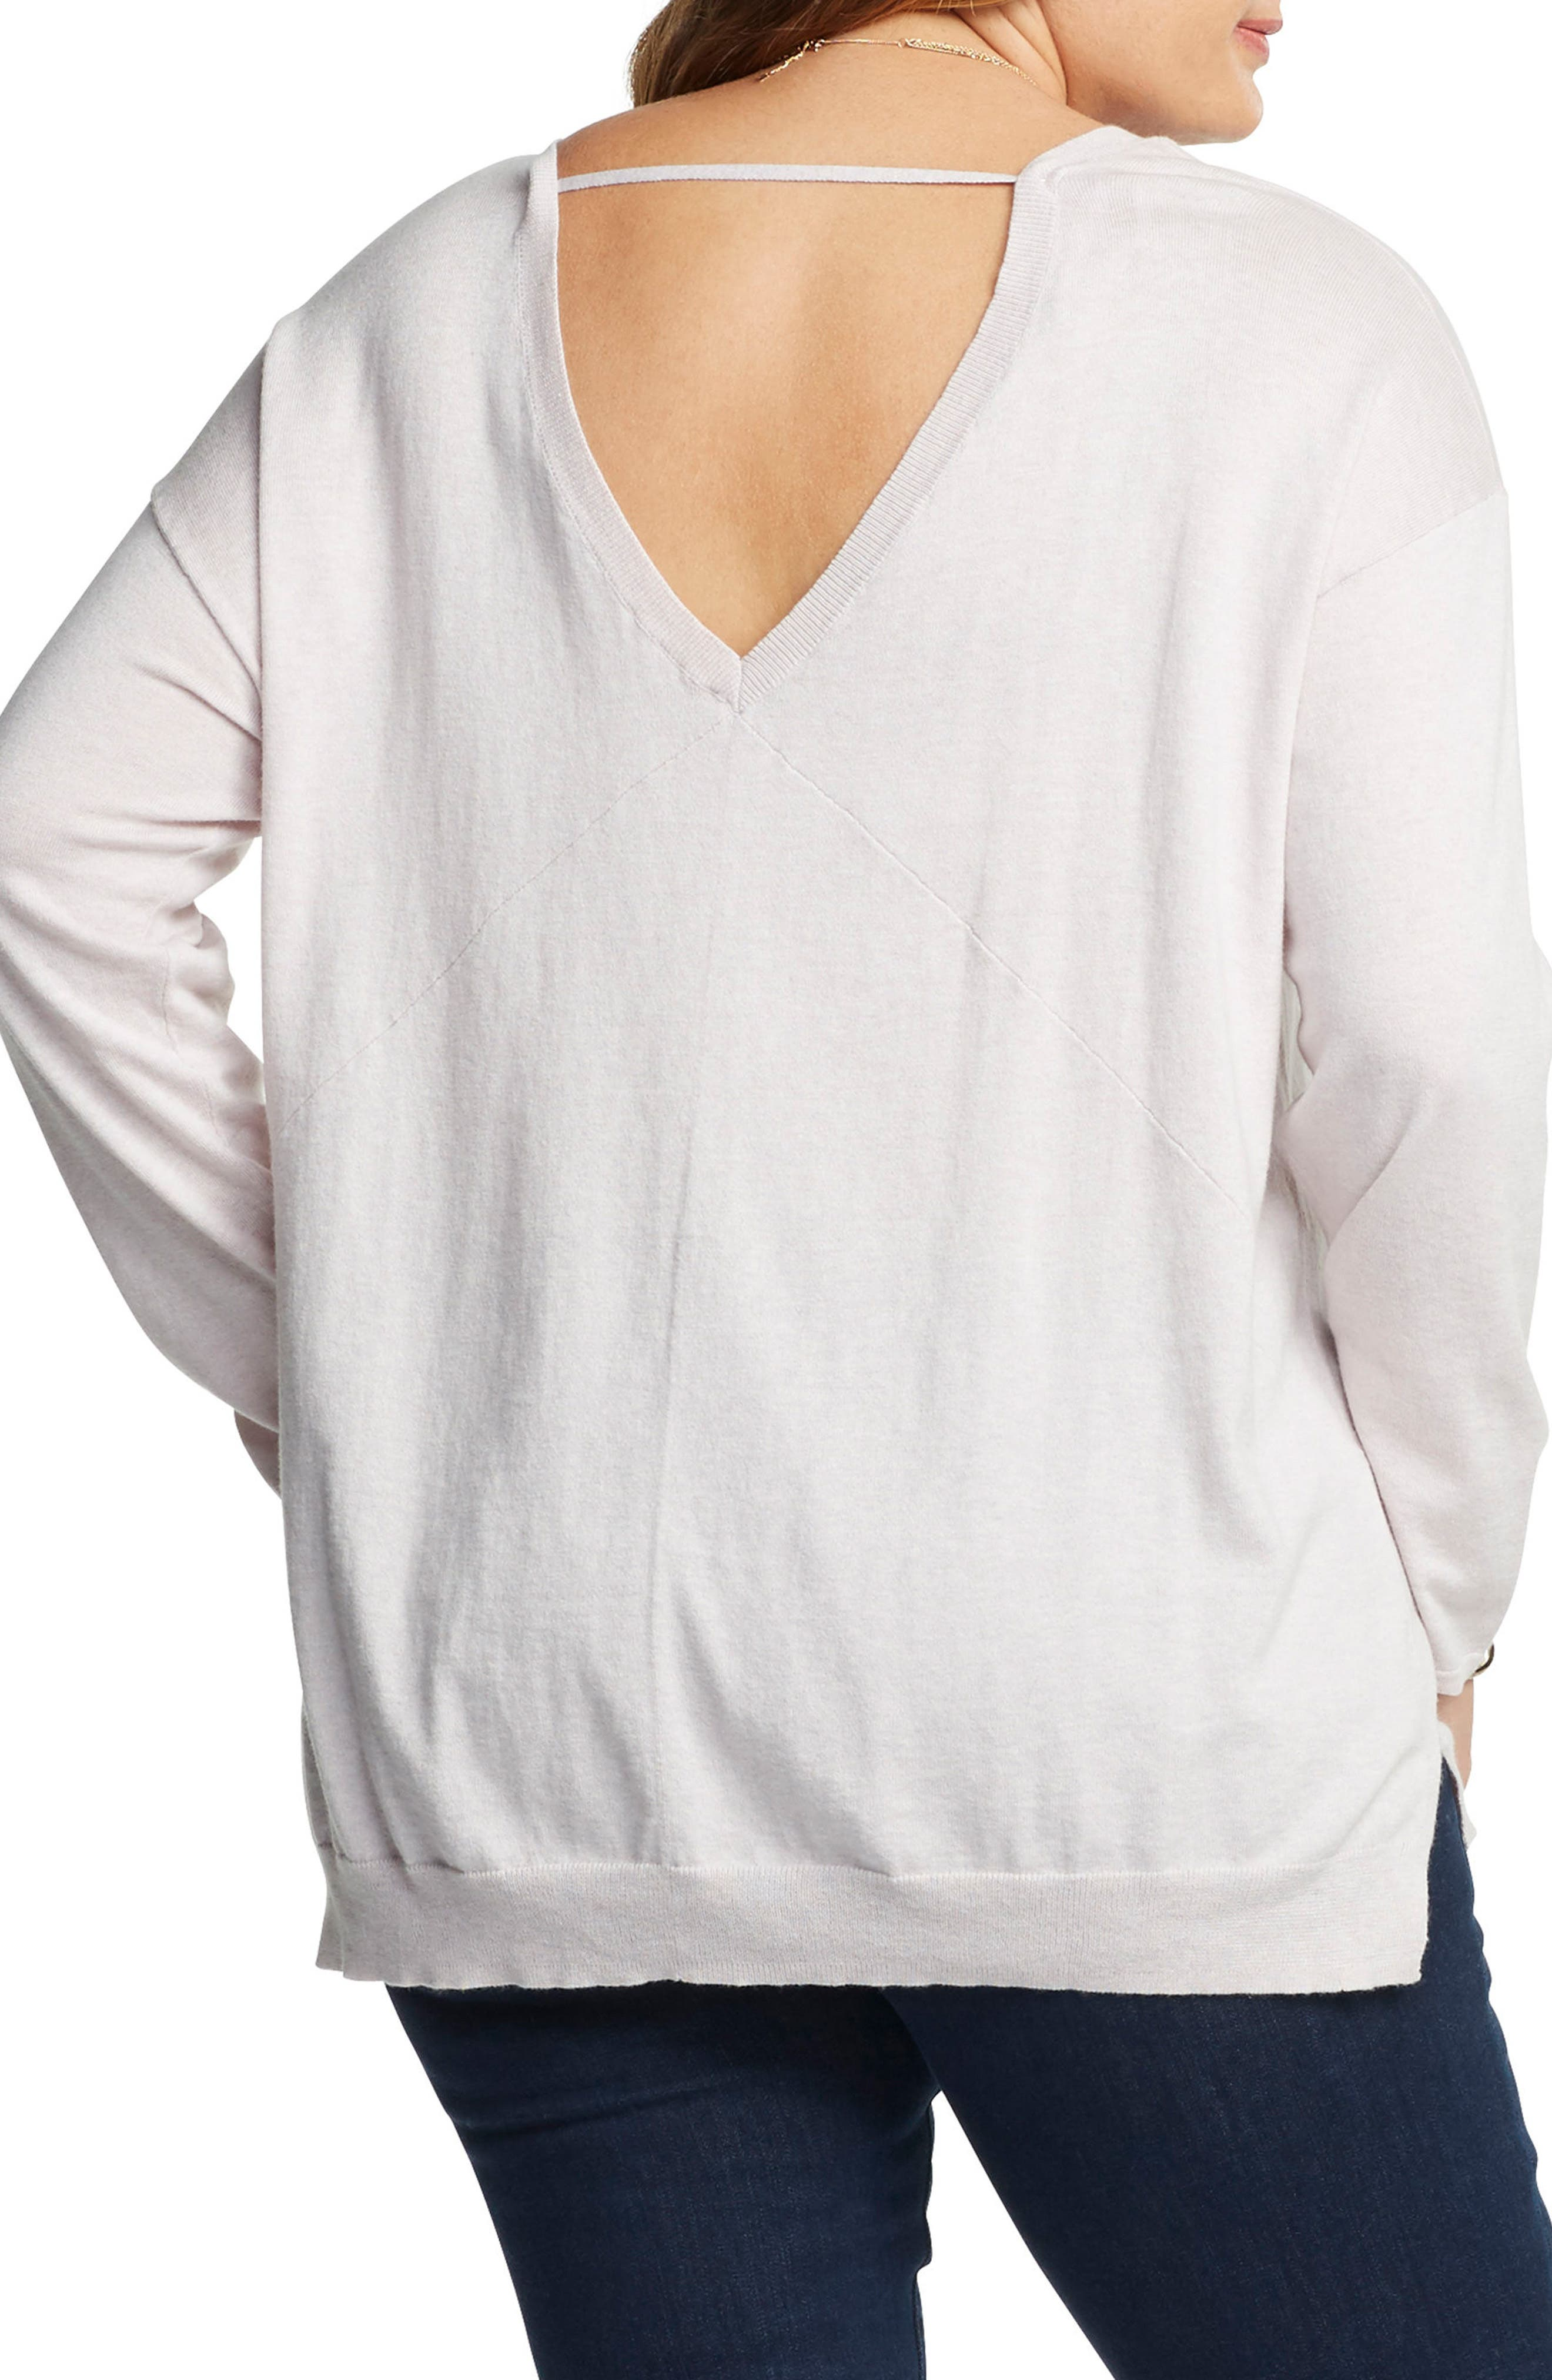 Alternate Image 2  - Tart Abella Cotton & Cashmere Sweater (Plus Size)